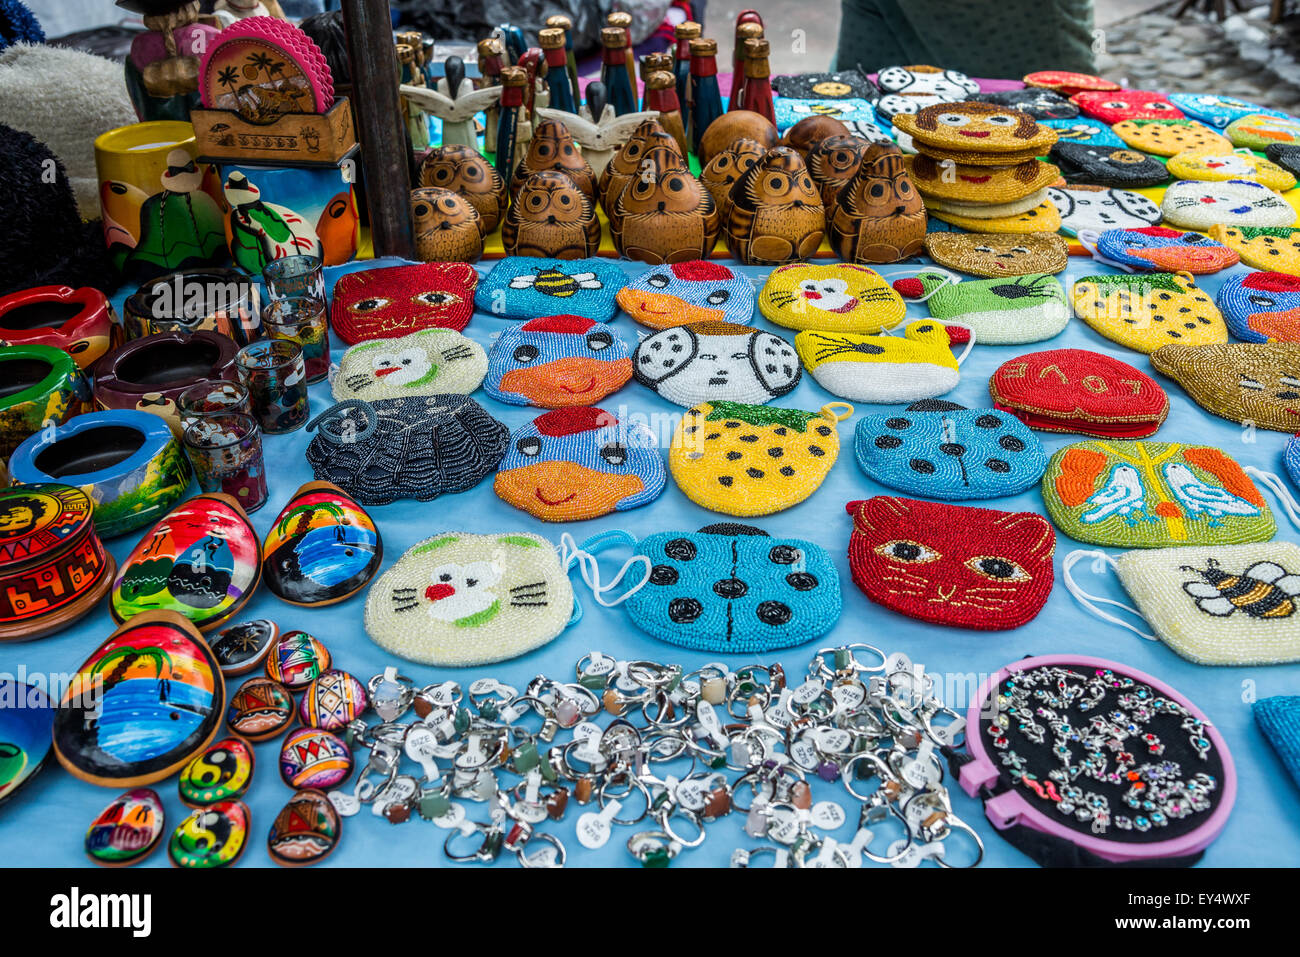 Hand-crafted local souvenirs for sale on a stand at weekend market. Otavalo, Ecuador. - Stock Image